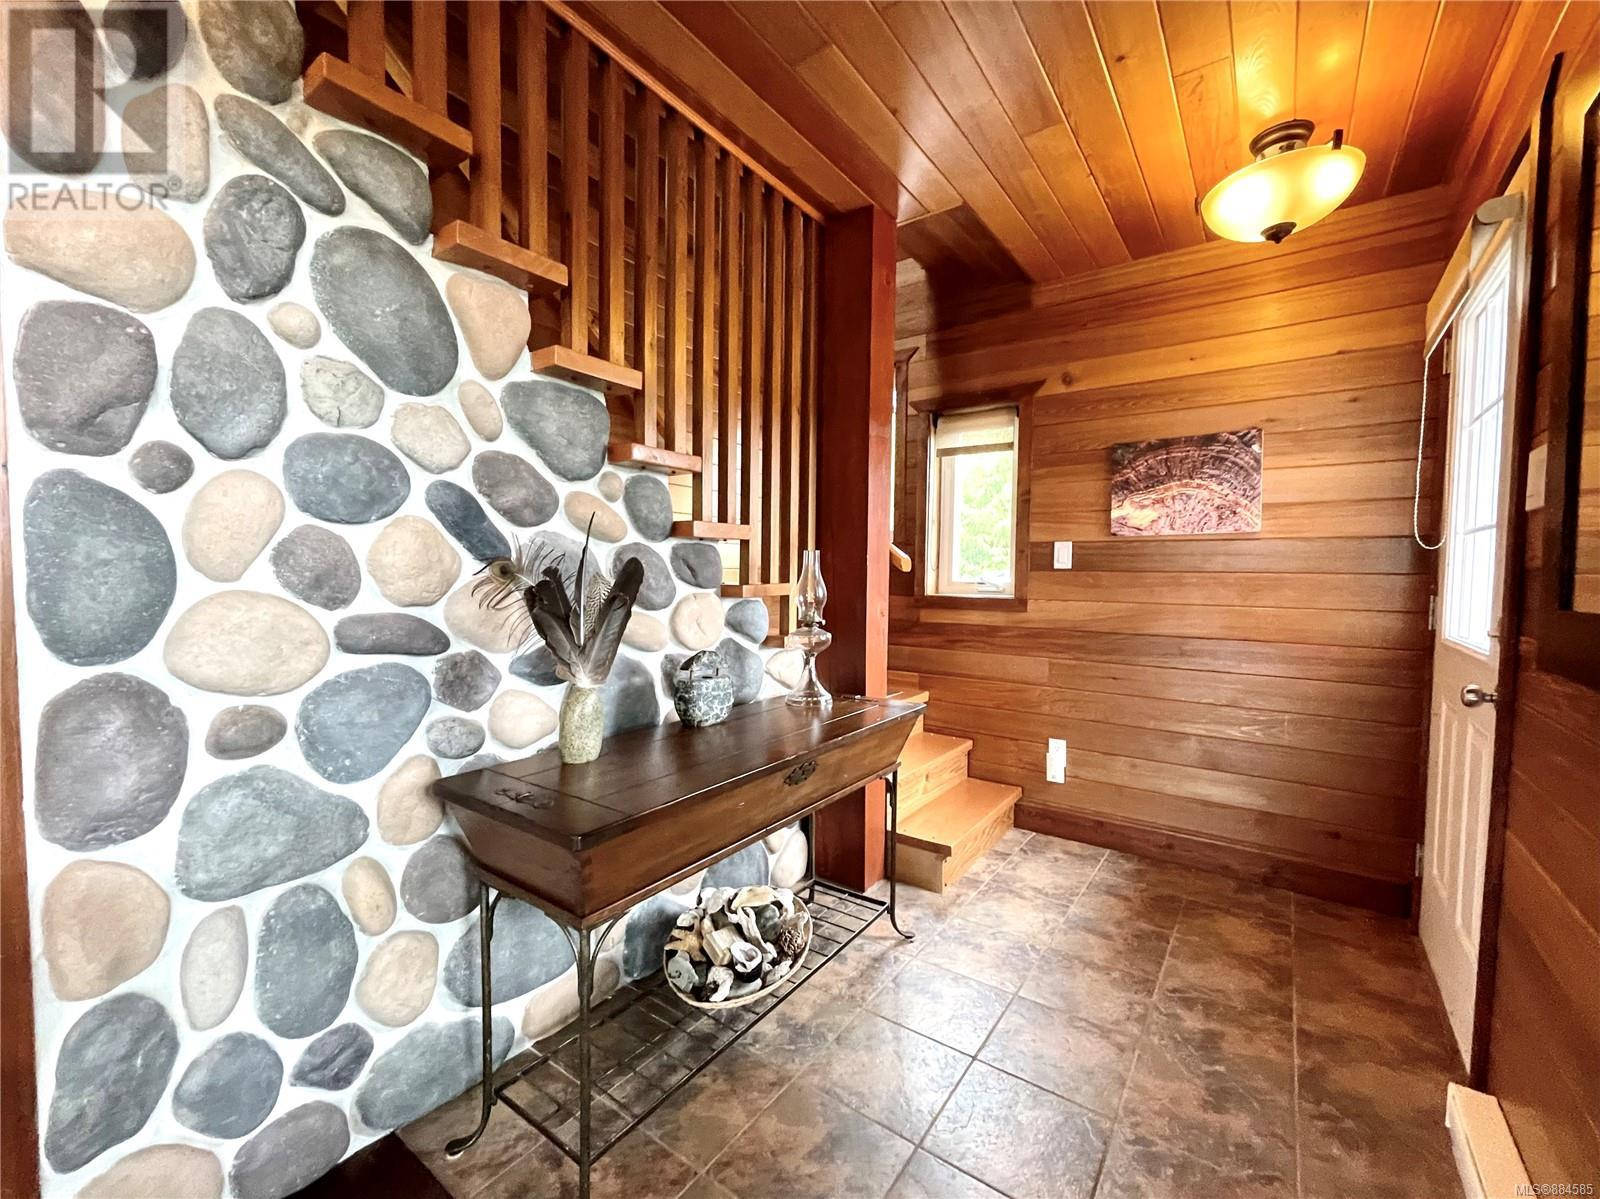 MLS® #884585 - Ucluelet House For sale Image #13